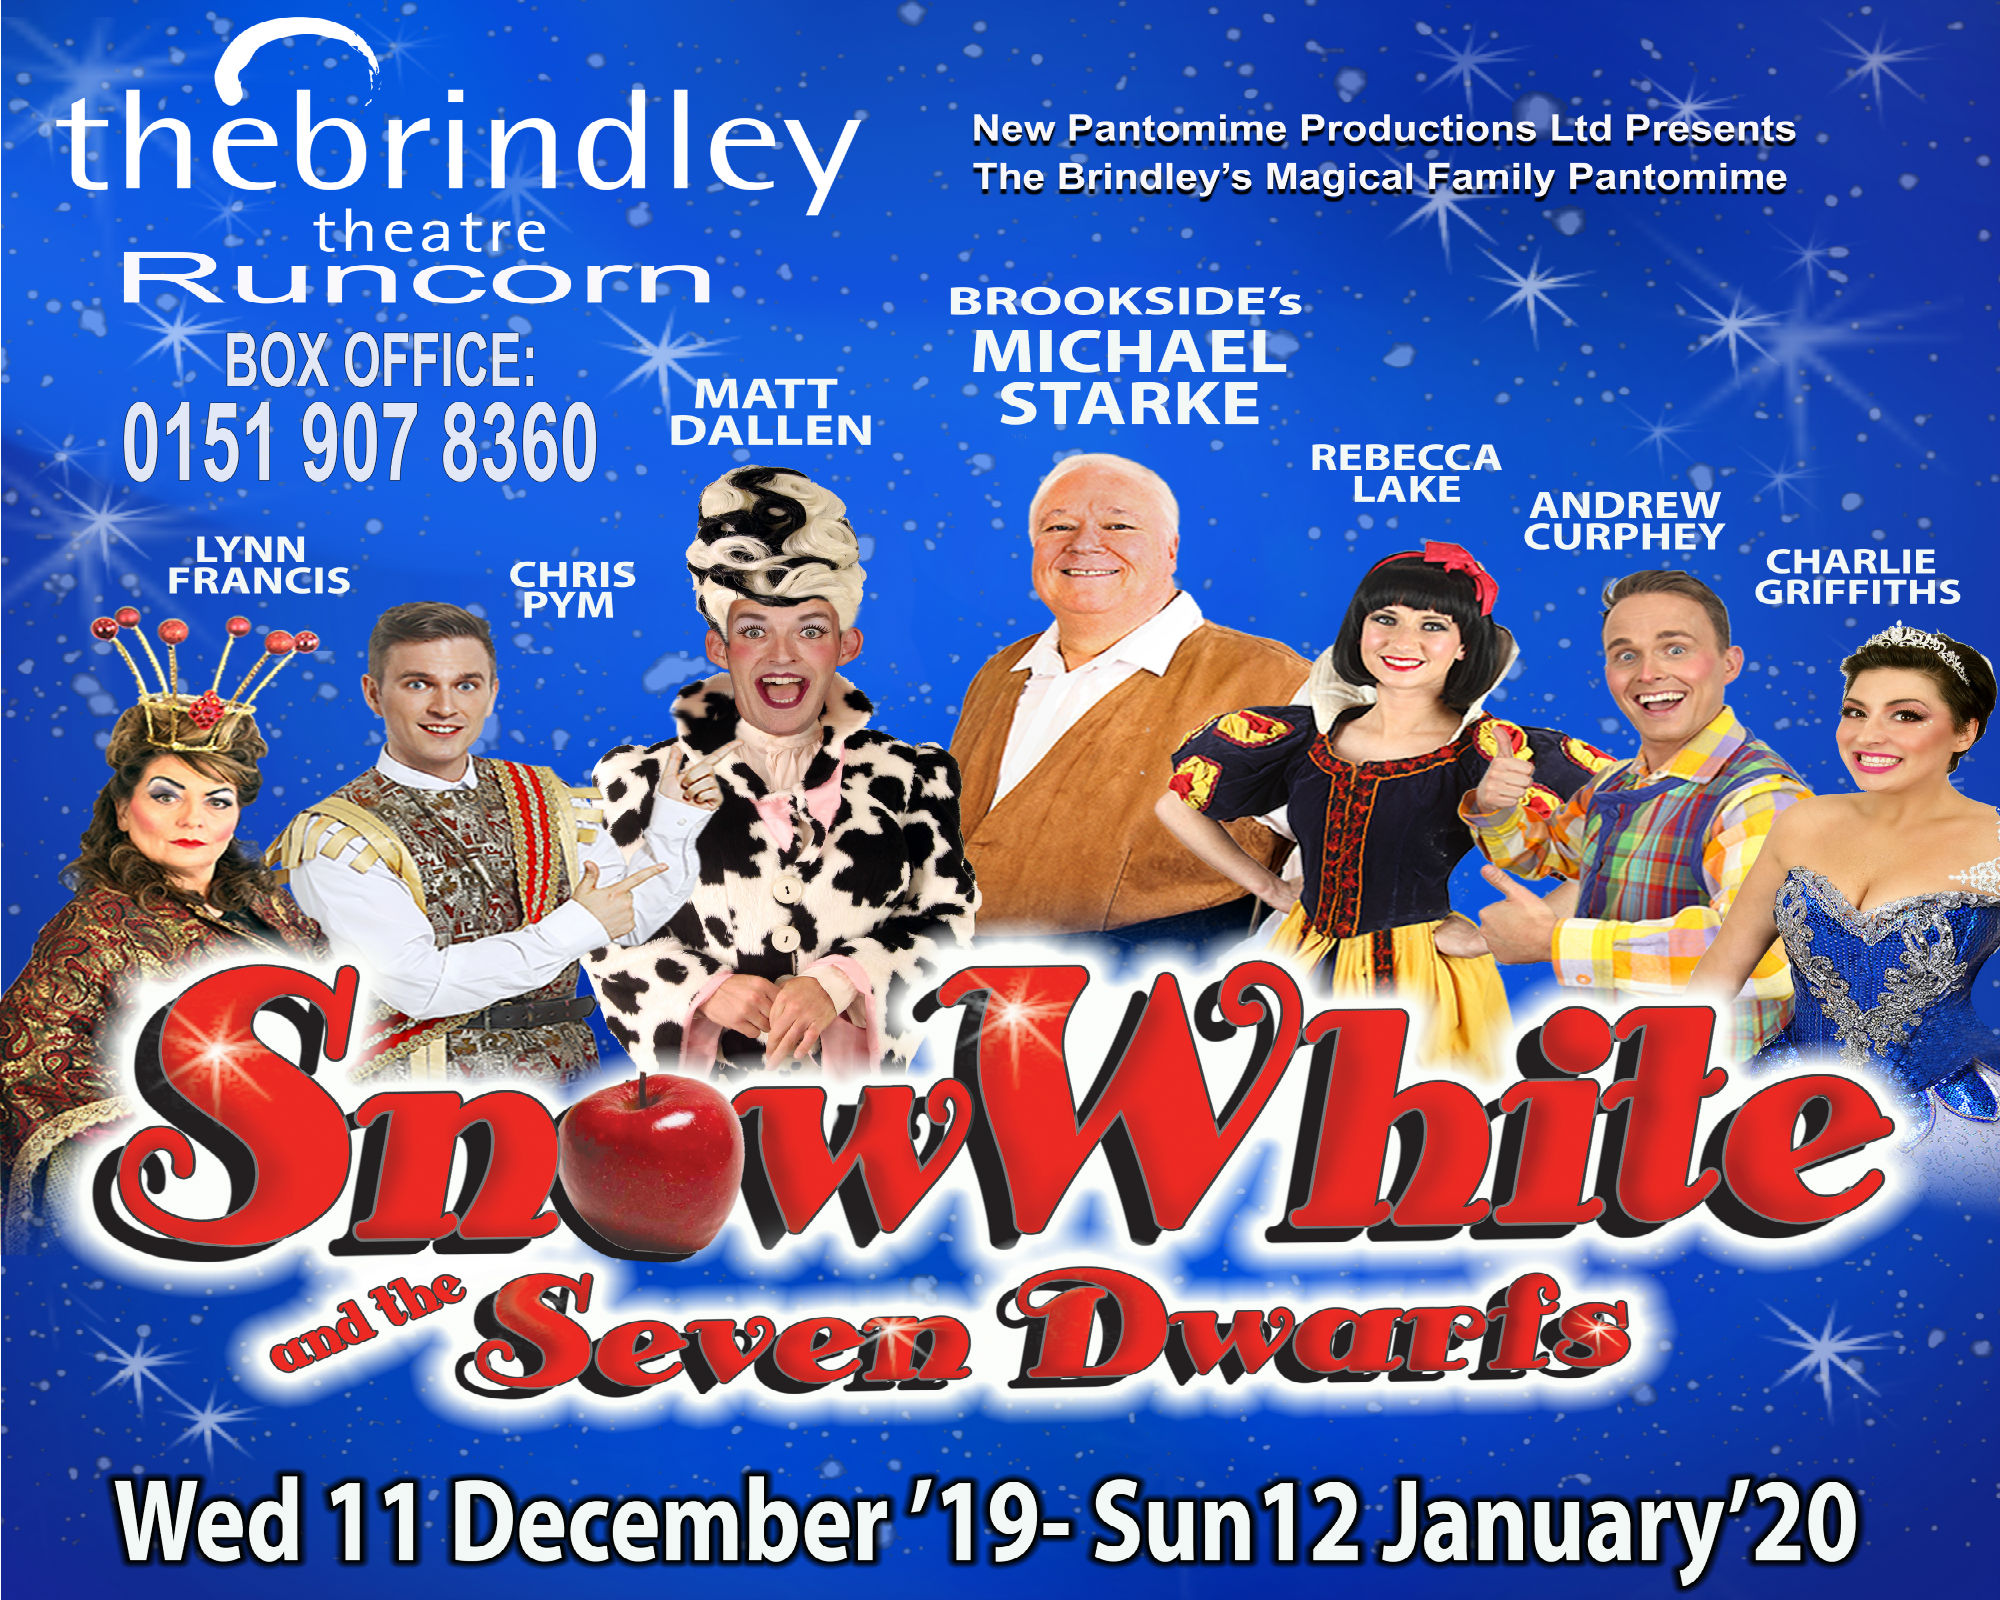 Wednesday 11 December until Sunday 12 January 2020Show times varyTickets from £18.00All prices include booking feesGroups 20 plus and Schools please contact the box office on 0151 907 8360